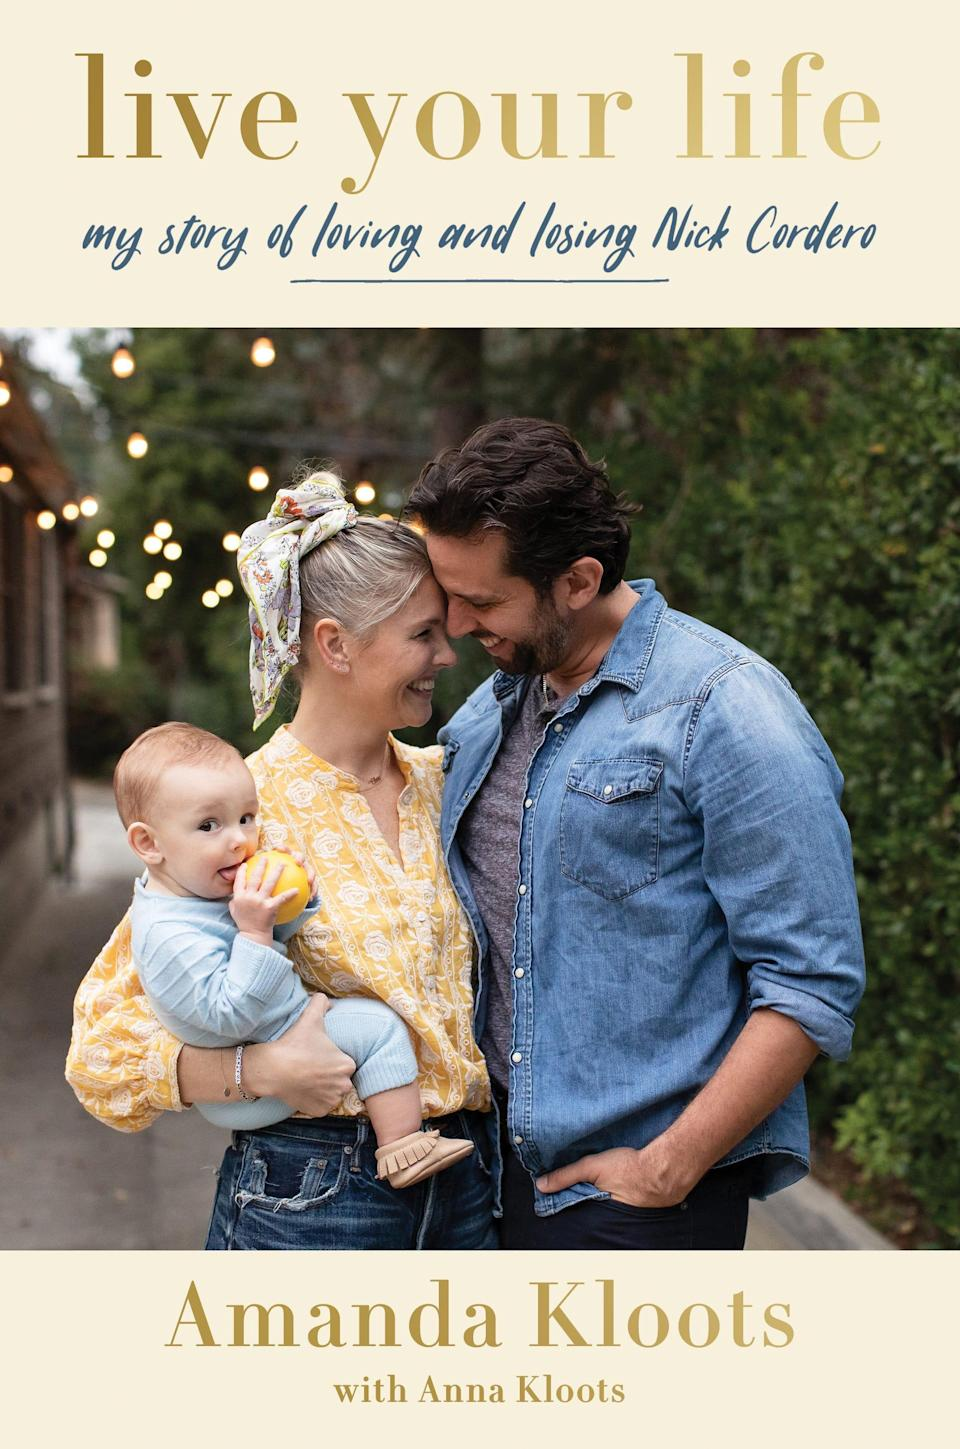 """Amanda Kloots co-wrote the book """"Live Your Life: My Story of Loving and Losing Nick Cordero"""" with her sister Anna."""